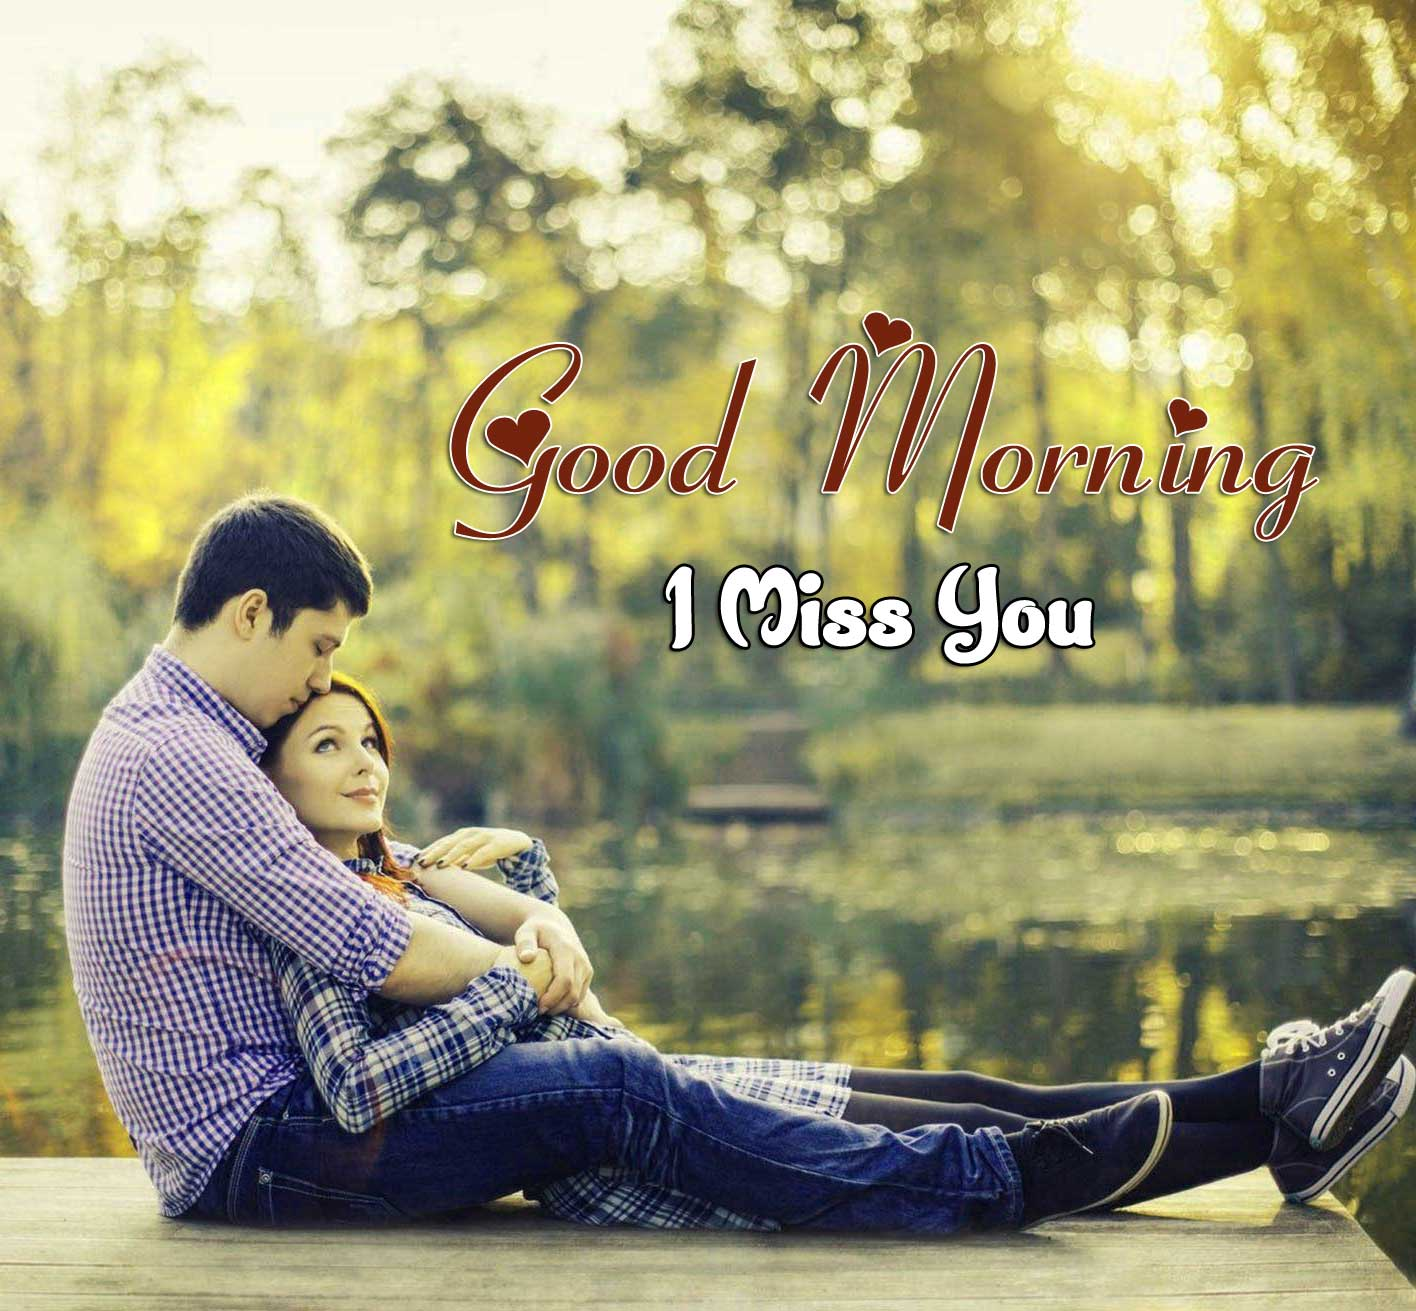 Latest Good Morning Pics Free 1